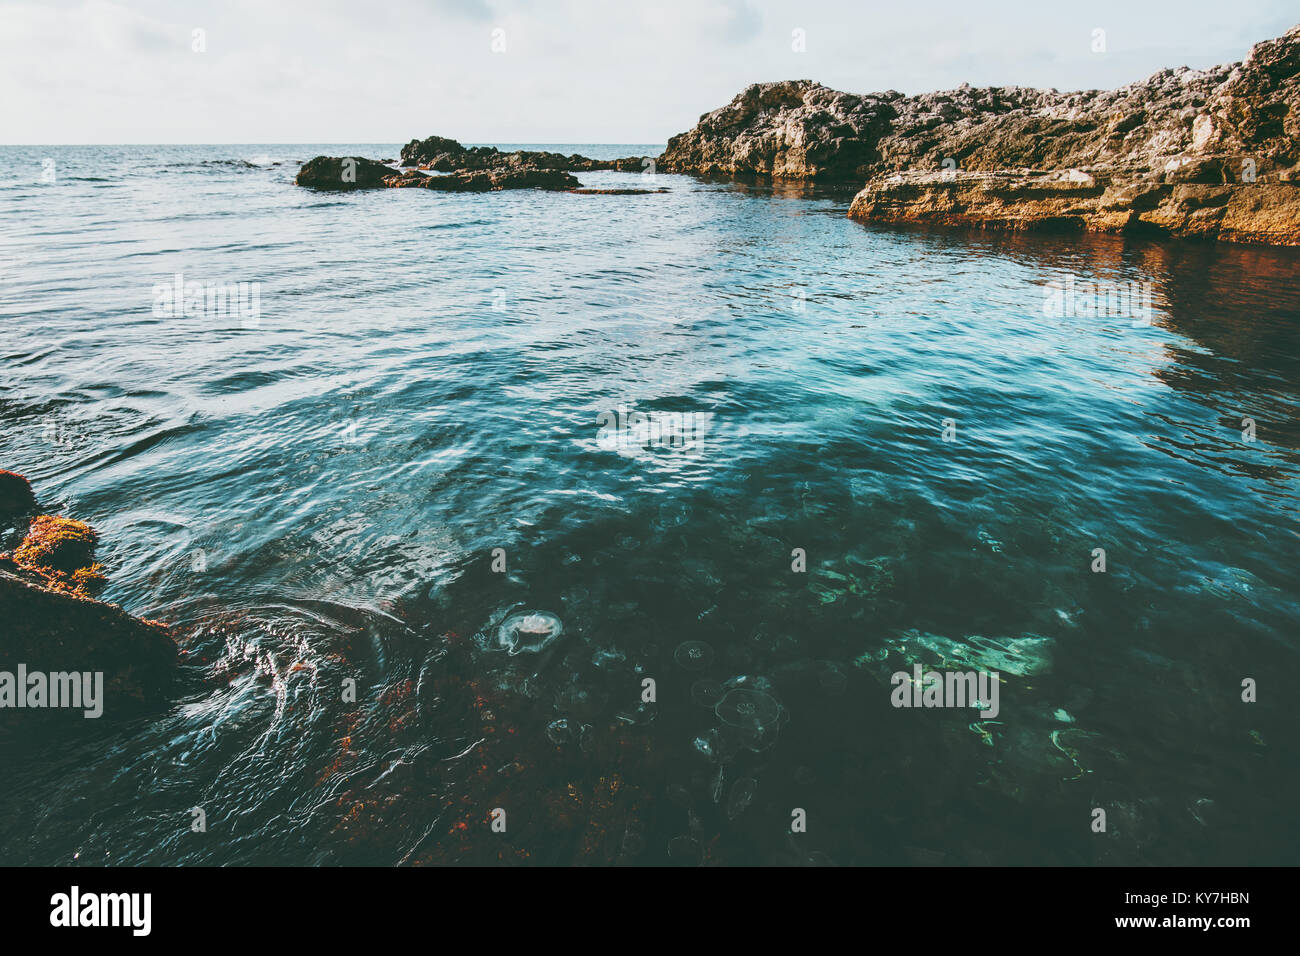 Blue Sea and rocky seaside Landscape calm idyllic scenic view vacations travel - Stock Image